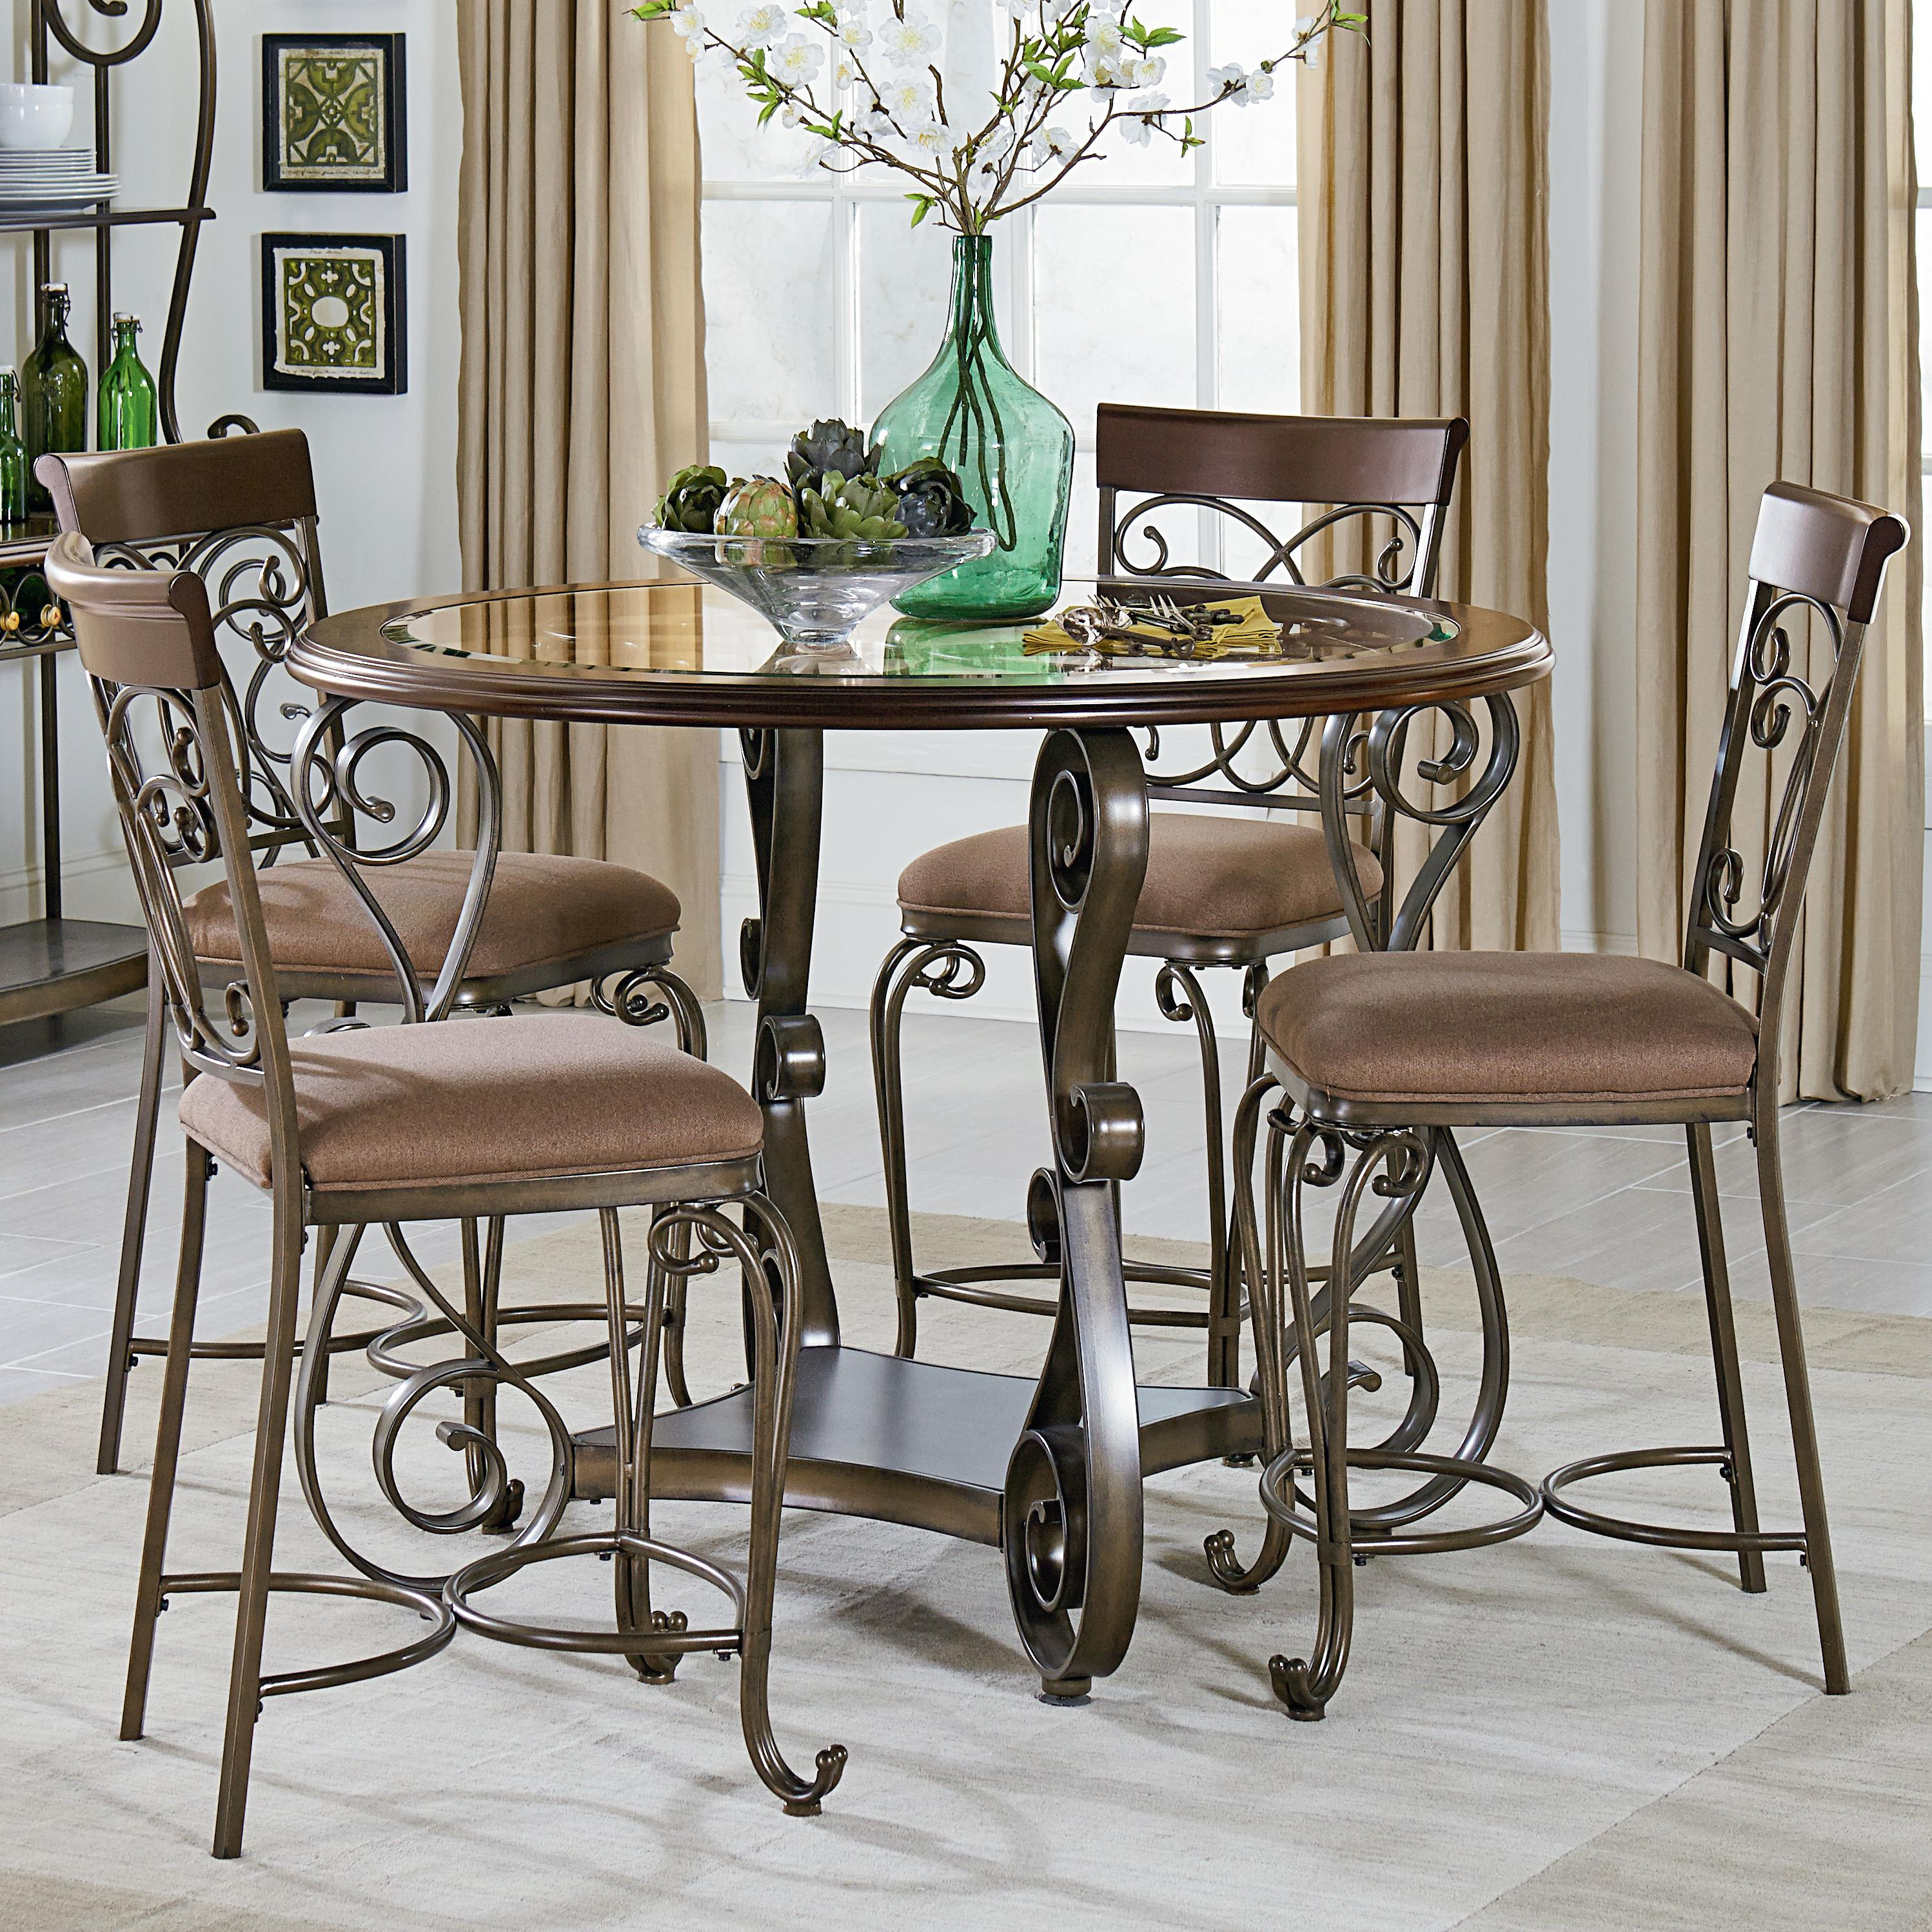 Round Counter Height Table And Chair Set By Standard